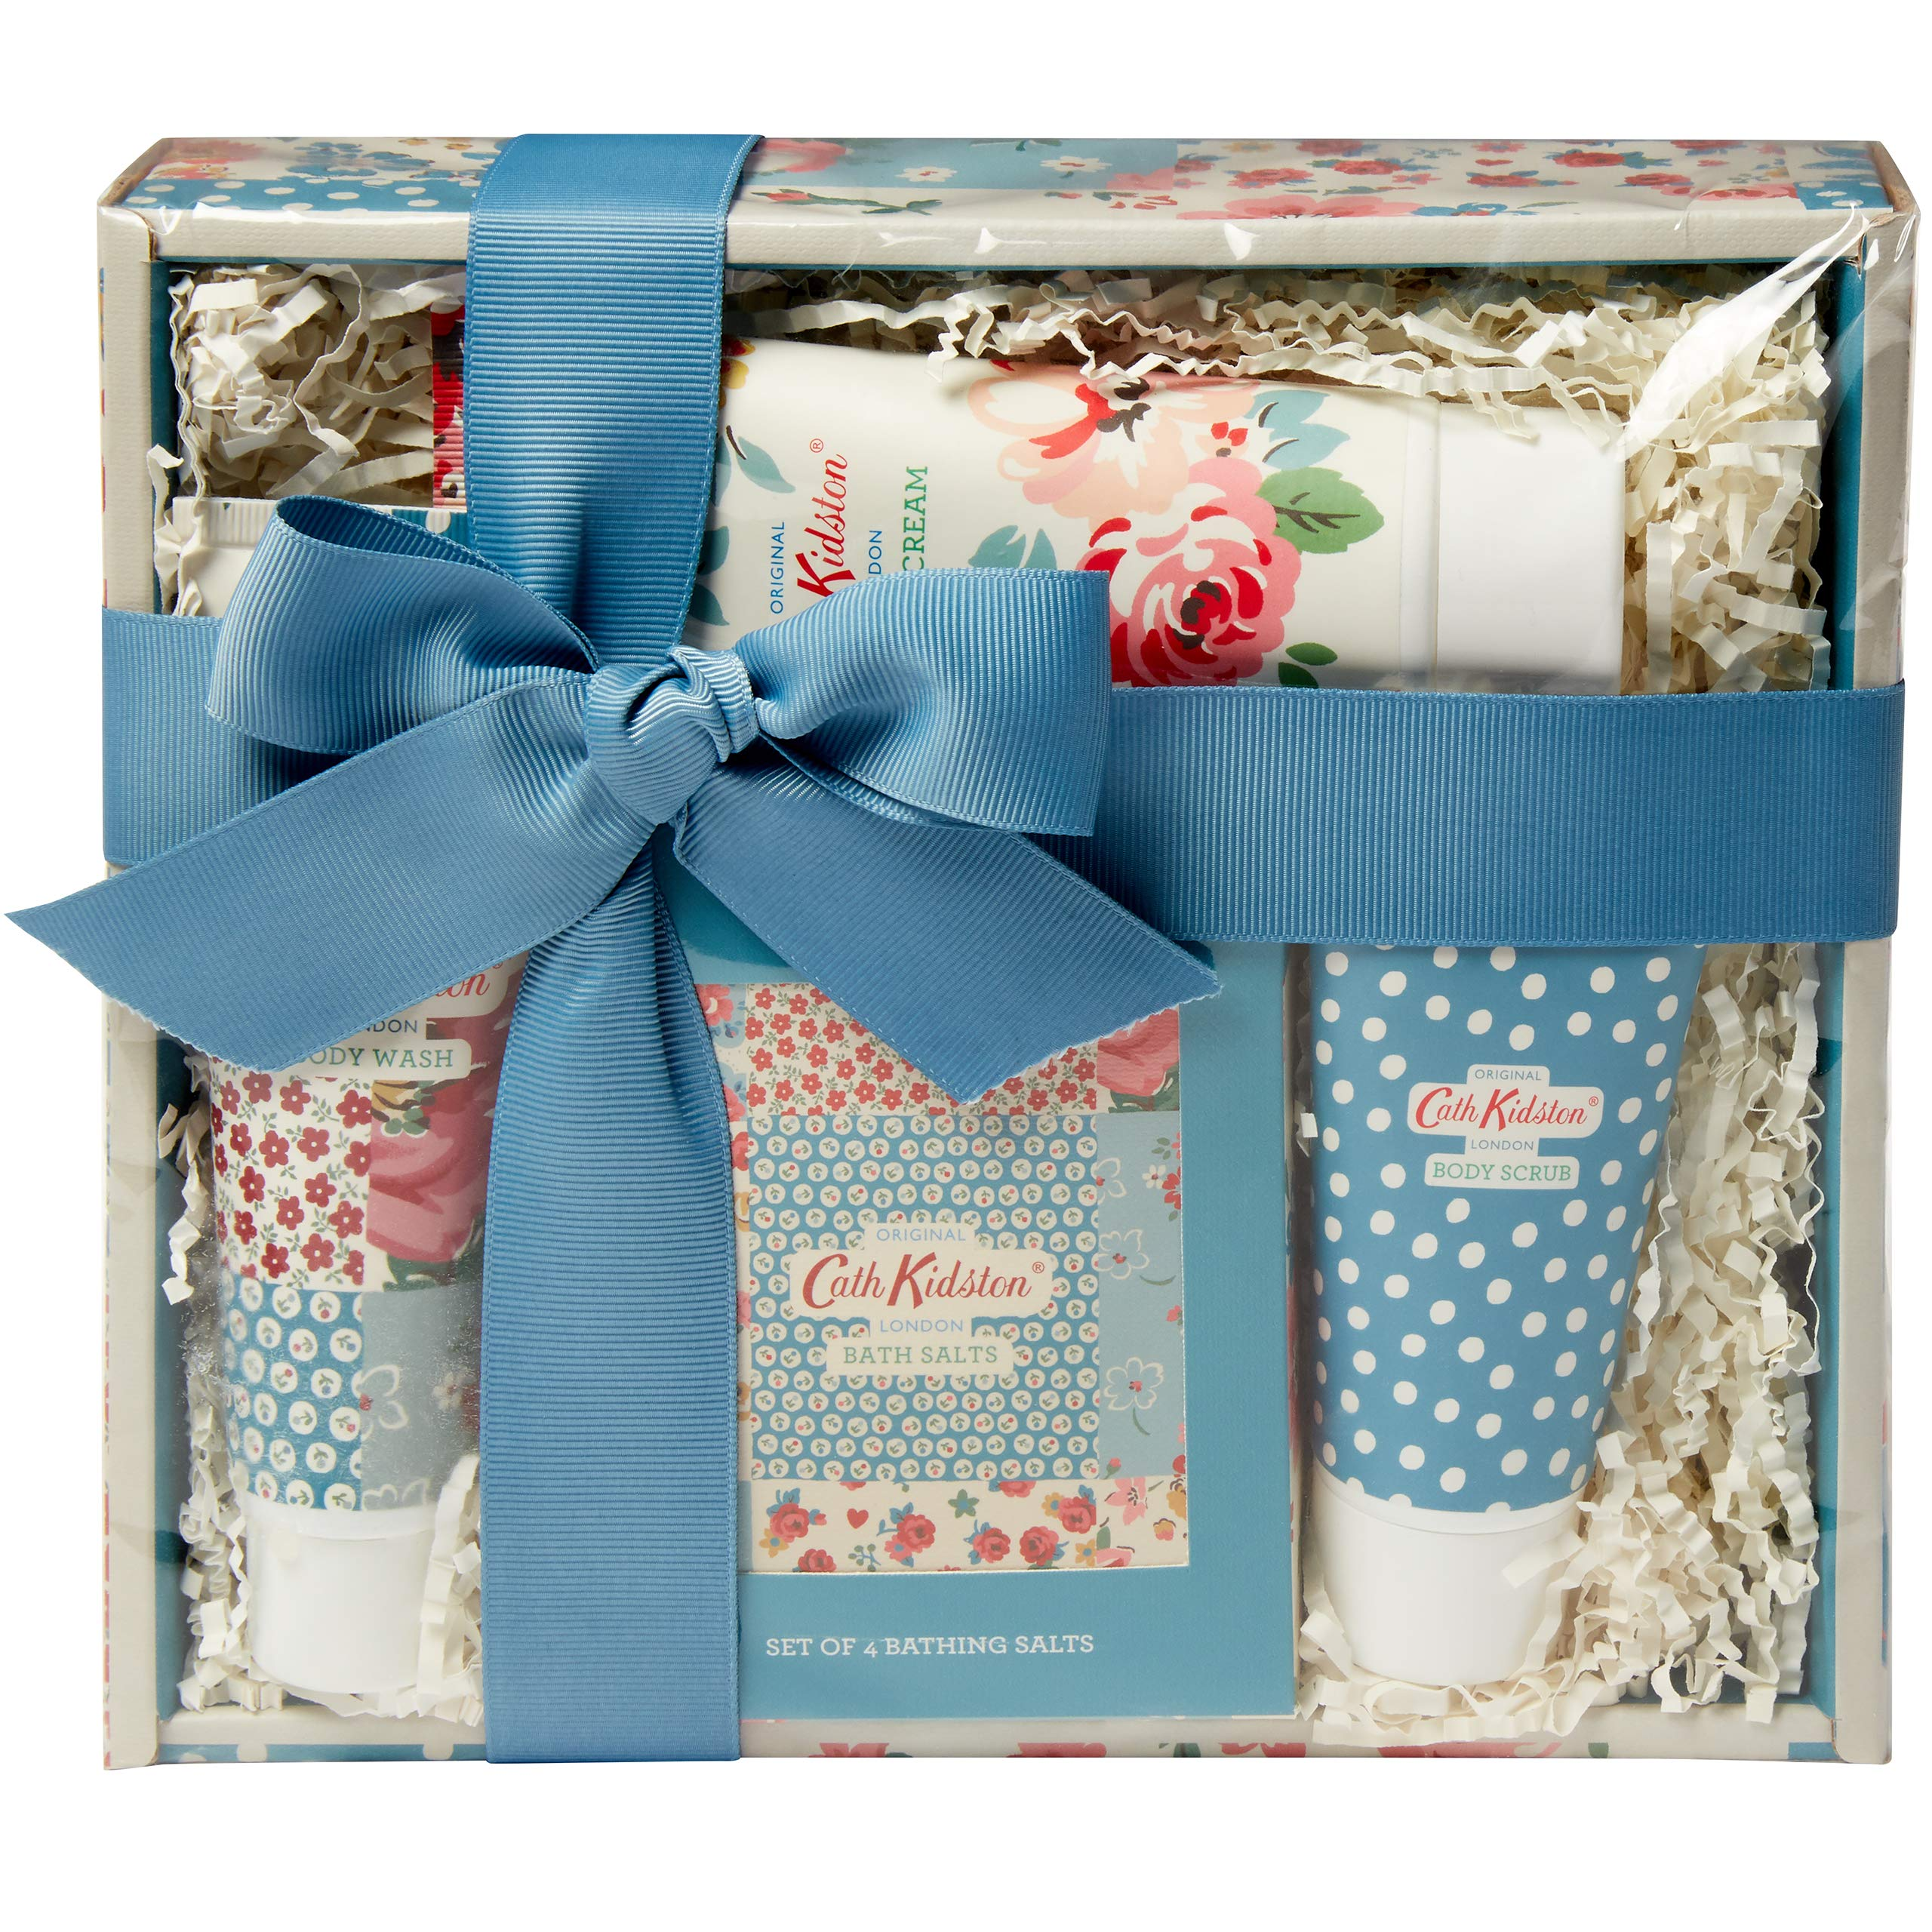 Cath Kidston Beauty Cottage Patchwork Pamper Hamper, 100 ml Hand Cream, 50 ml Body Scrub, Box Set of four Bathing Salts, 75 ml Body Wash